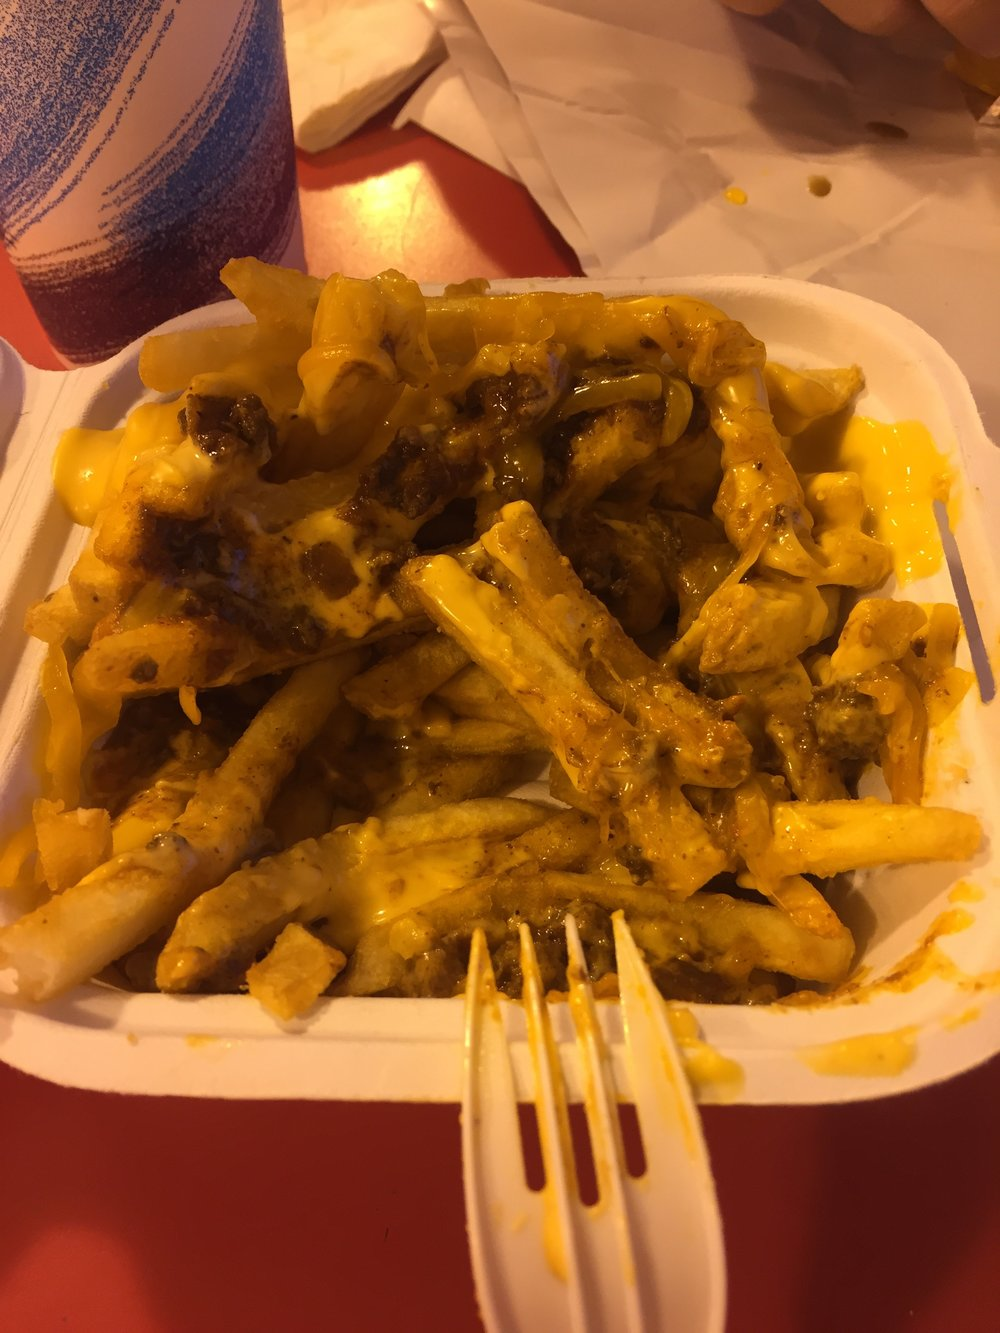 Chili Cheese Fries at Tony Lukes. Their cheesesteaks are amazing too!